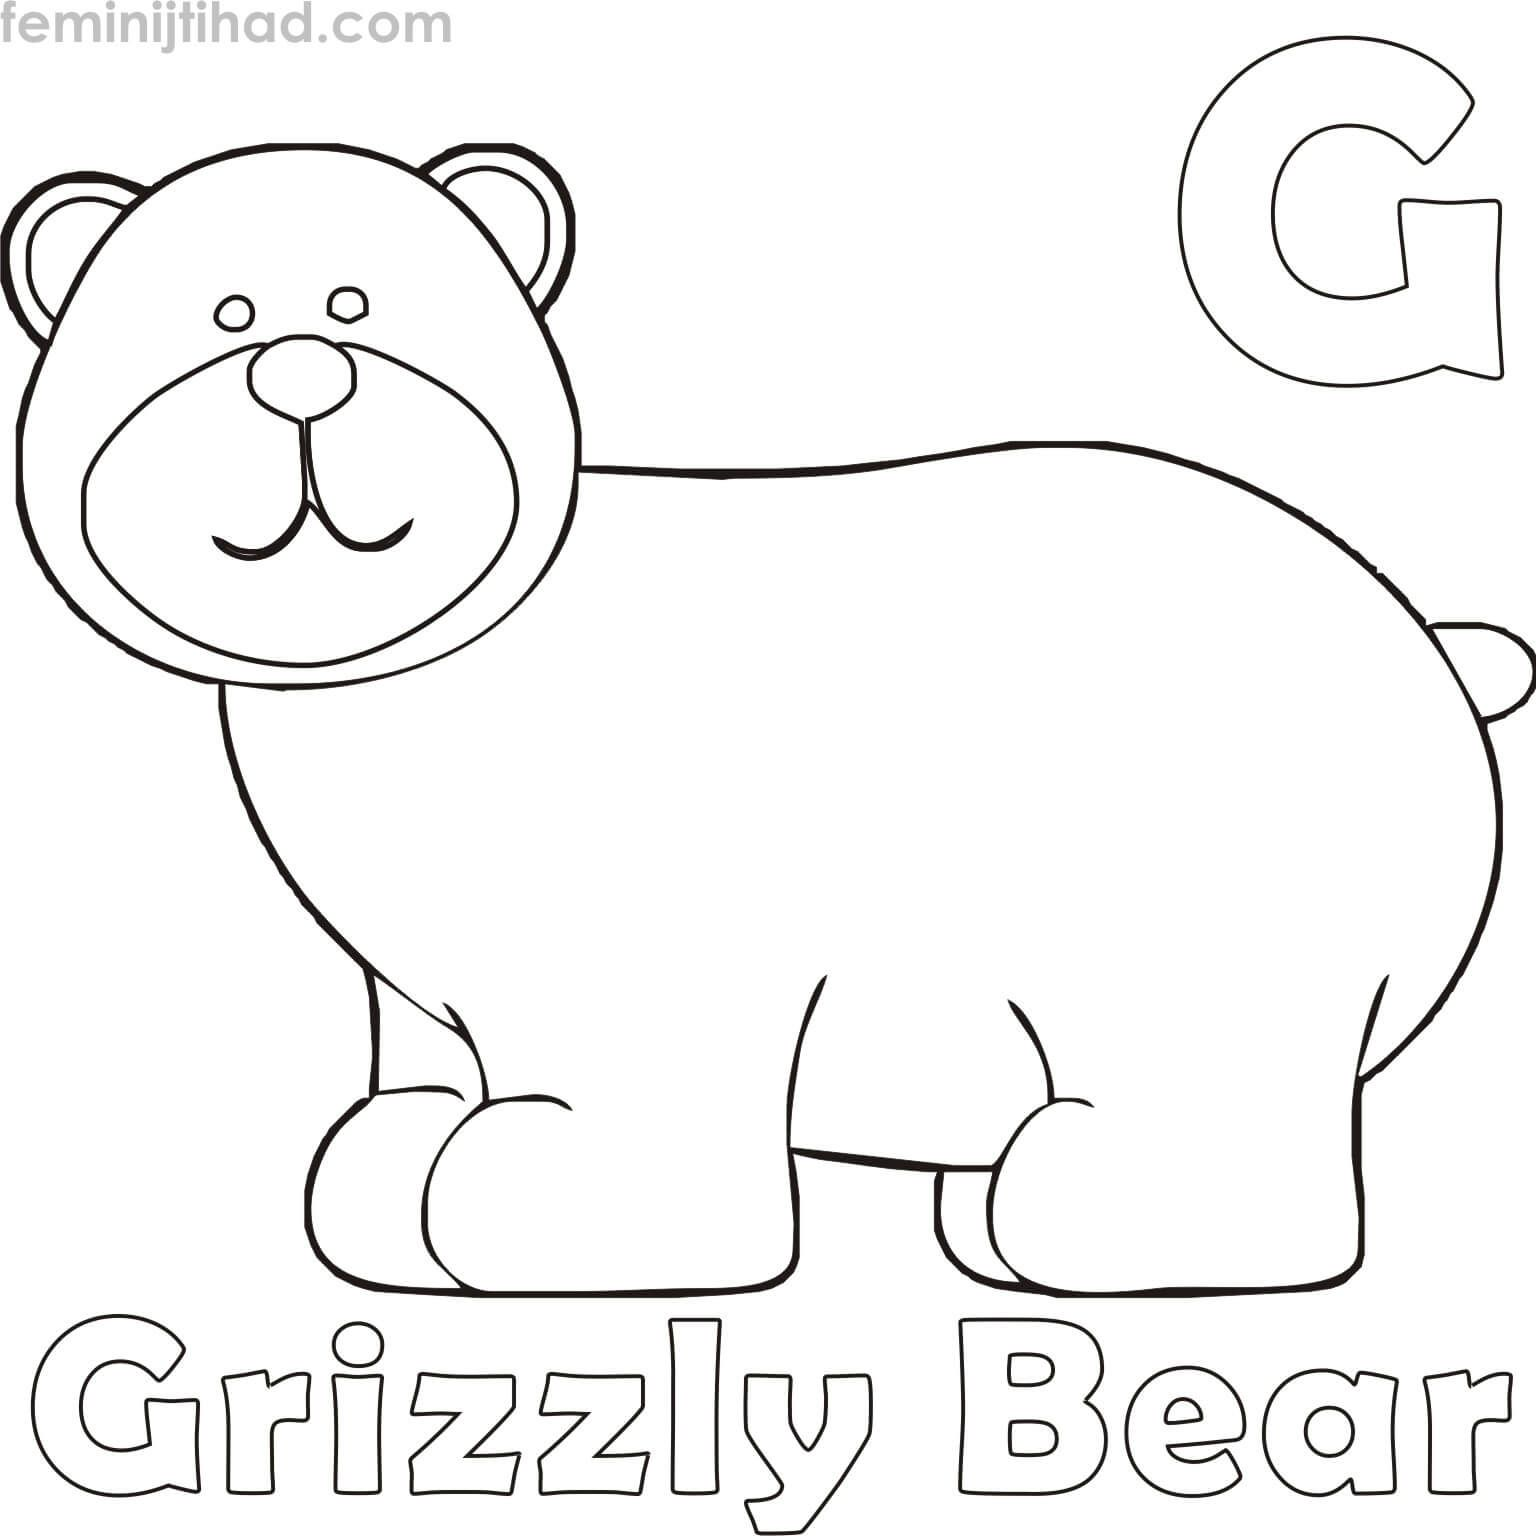 Printable Grizzly Bear Coloring Pages